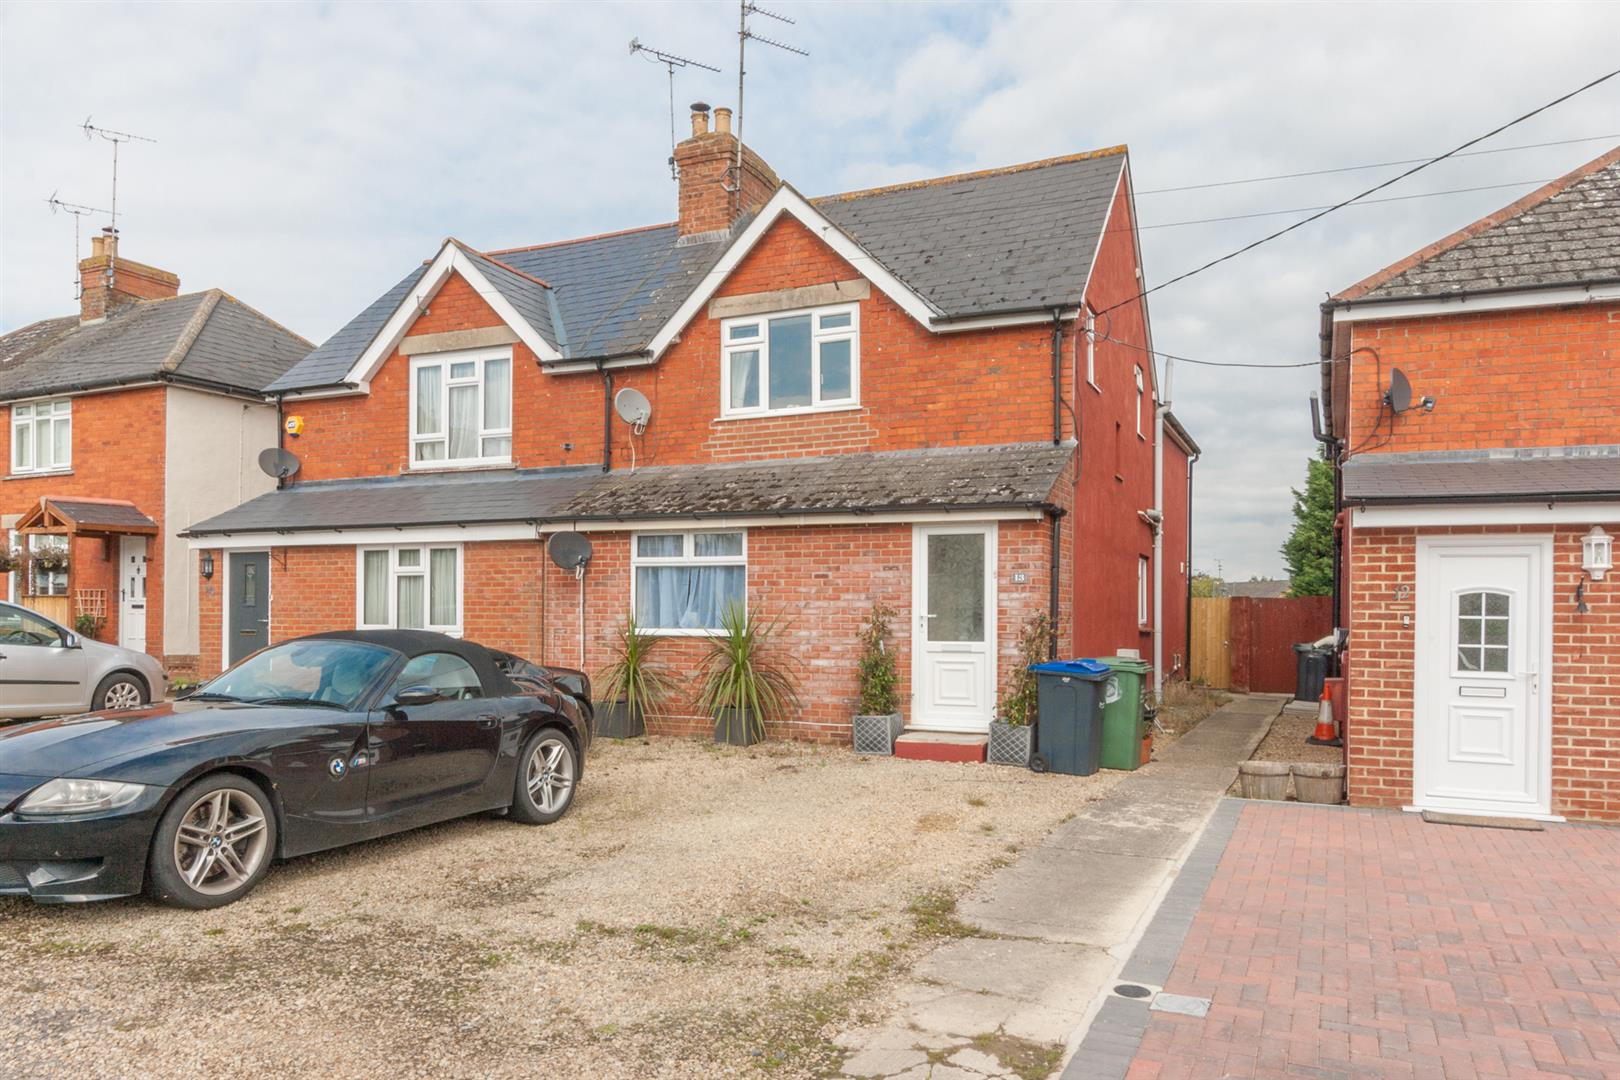 3 Bedrooms Semi Detached House for sale in Witts Lane, Purton, Swindon